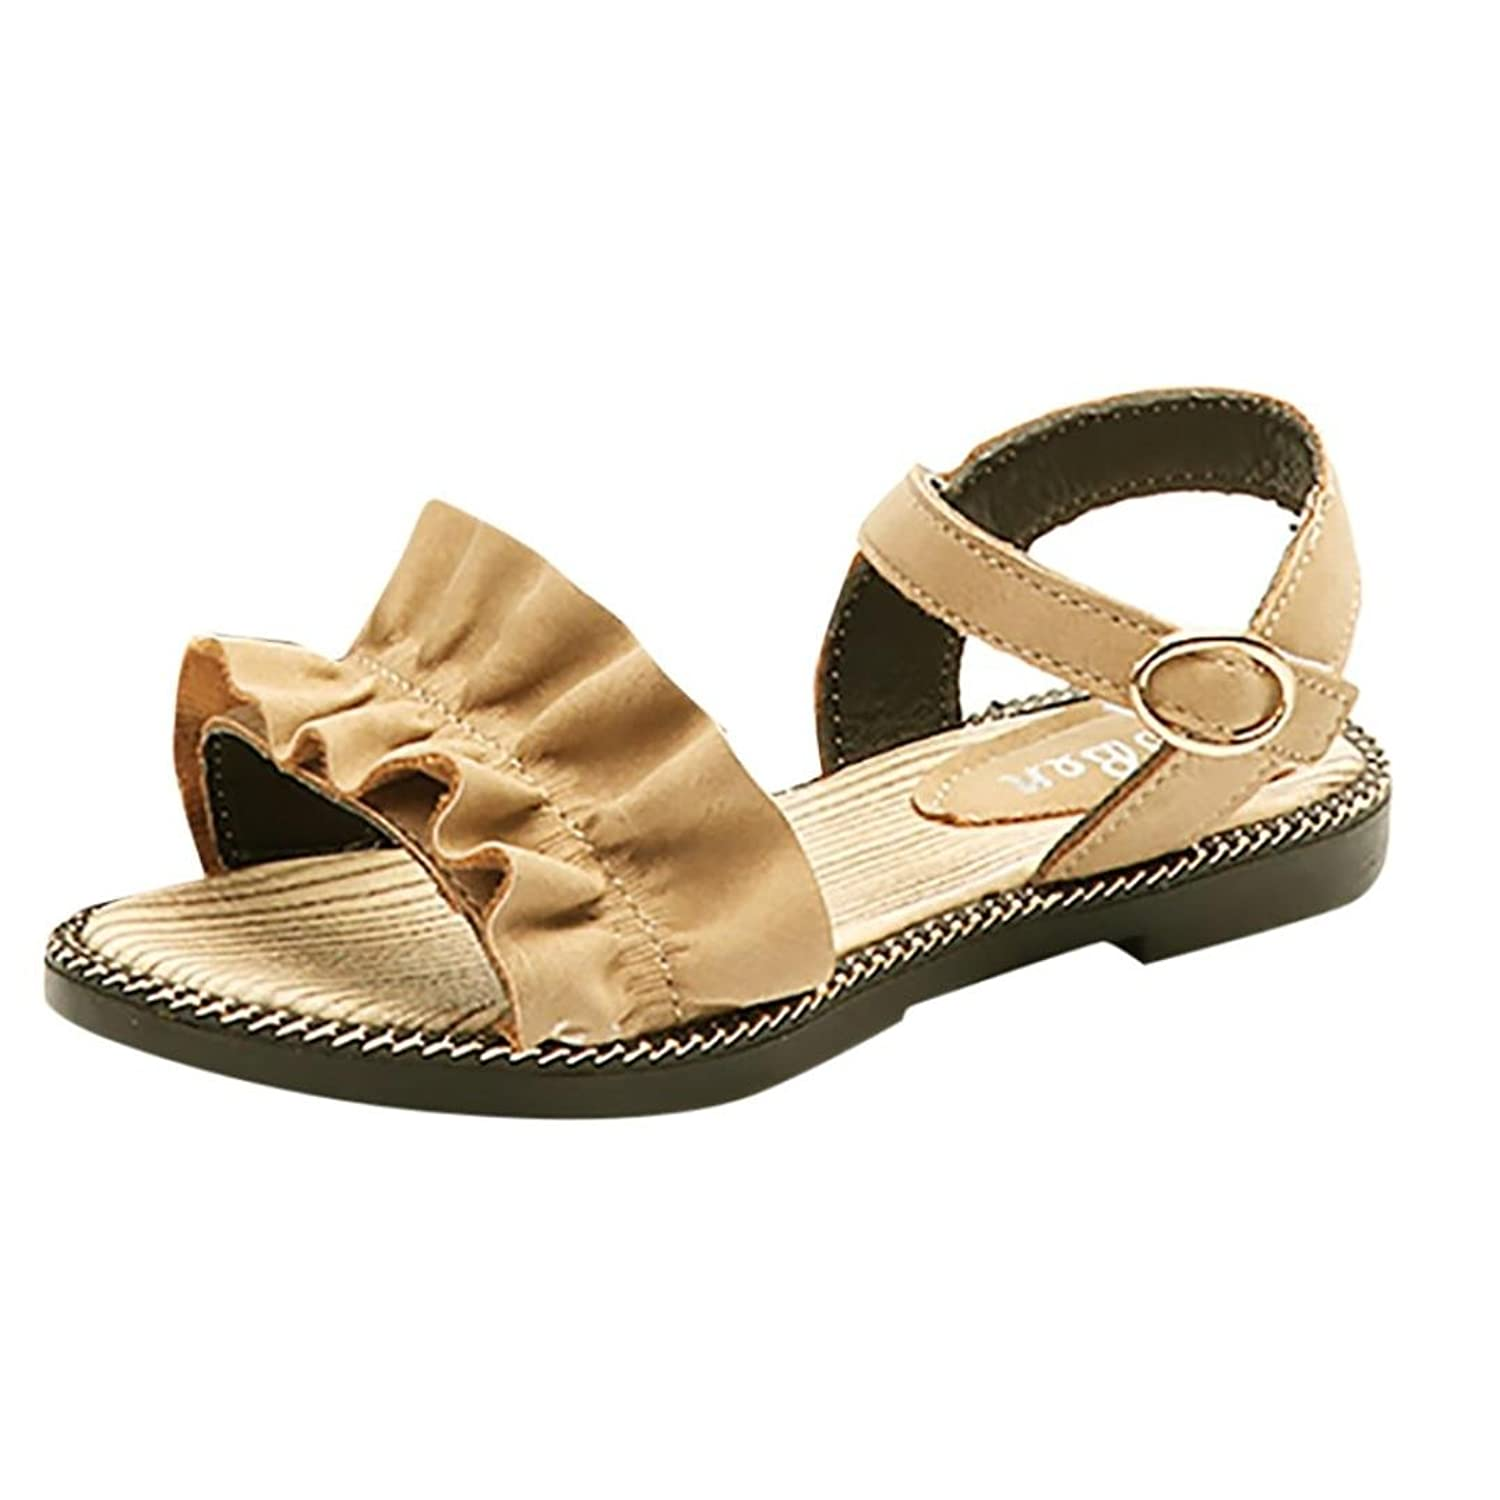 Lanhui Summer Kids Sandals Fashion Leather Bowknot Girl Pricness Shoes Baby